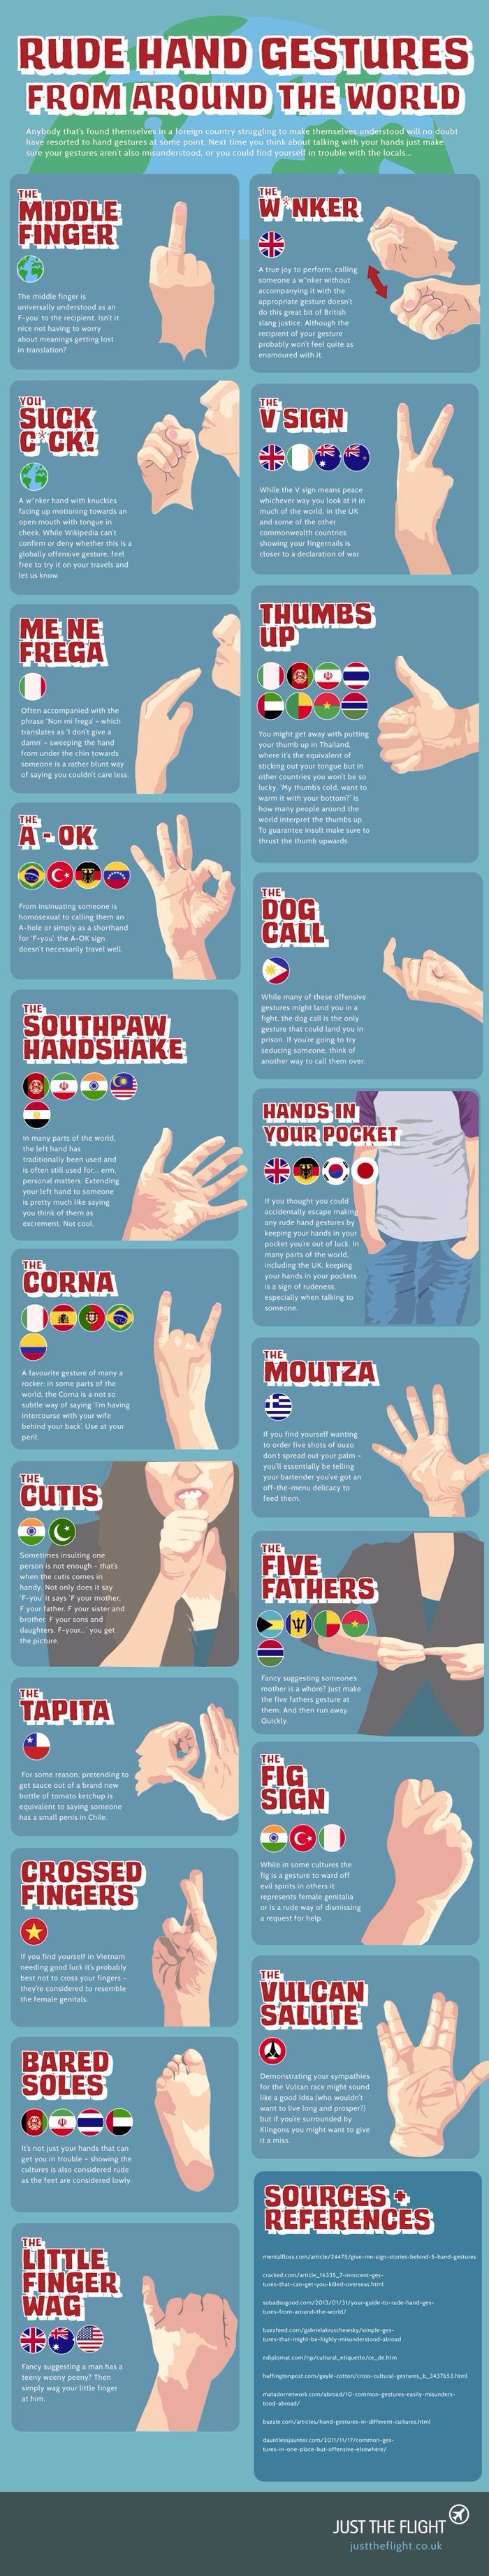 Never seen the 'little finger wagging' gesture before, but the other British ones at the very least are accurate